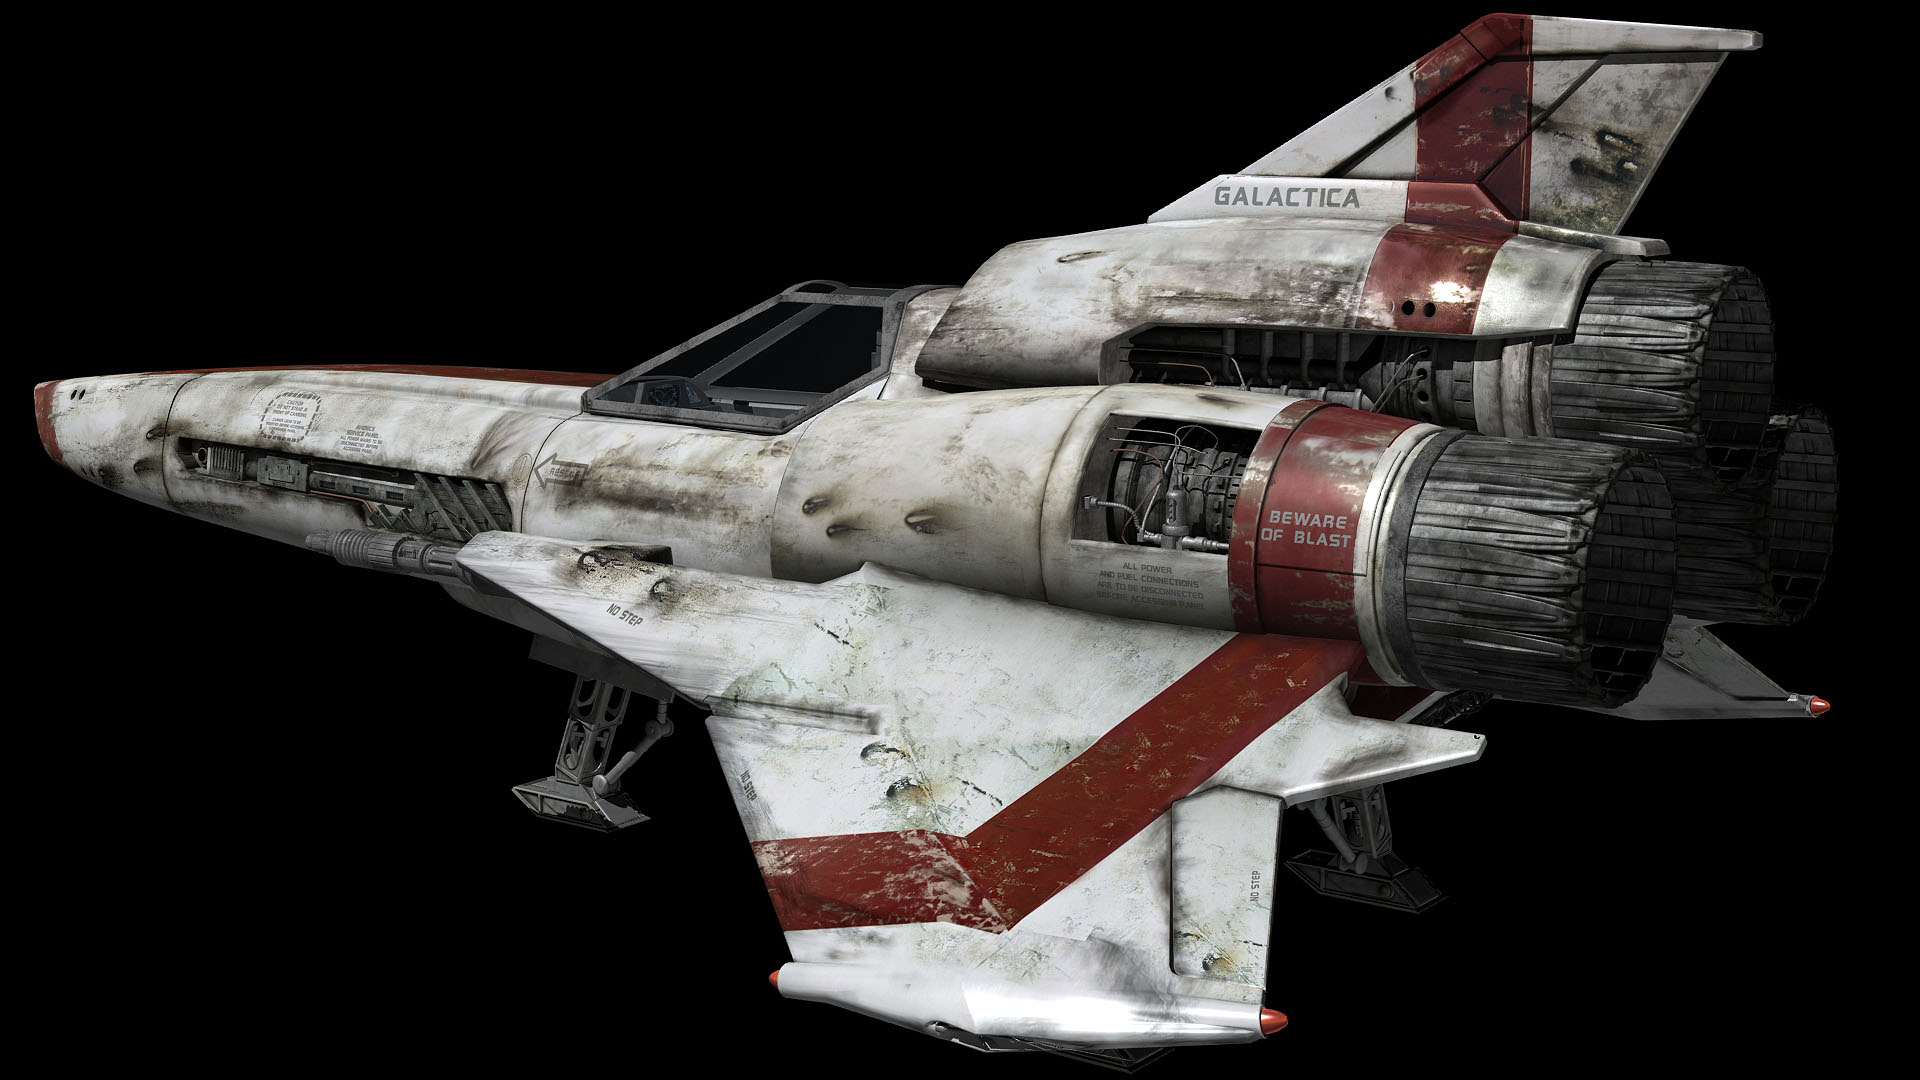 Battlestar-Galactica-Ships-Heres-my-refs-http-media-battlestarwiki-org-imag-II-Damaged-wallpaper-wpc5802567